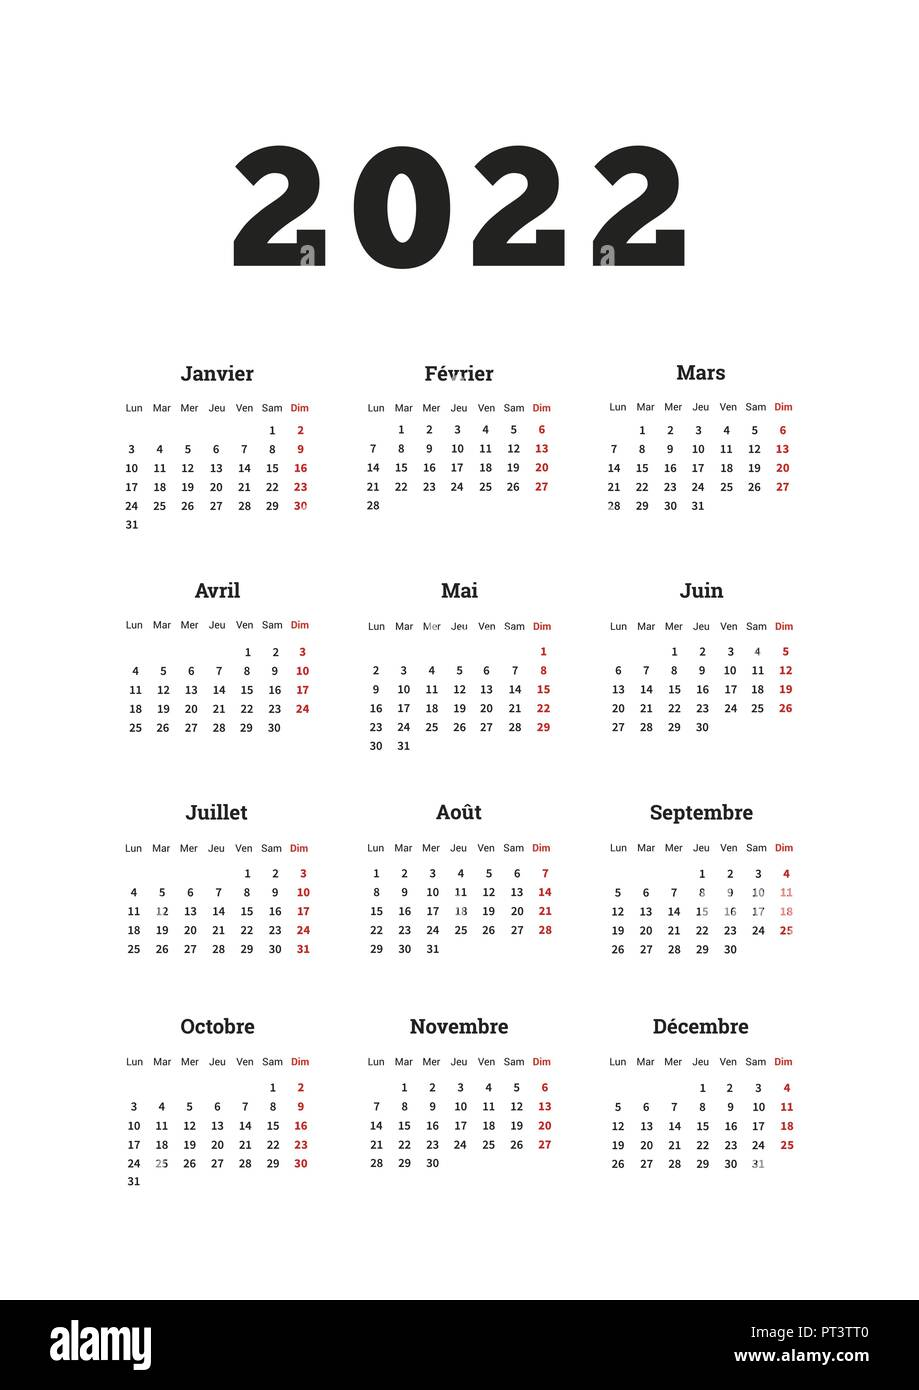 Calendrier 2022 Simple 2022 year simple calendar on french language, A4 size vertical